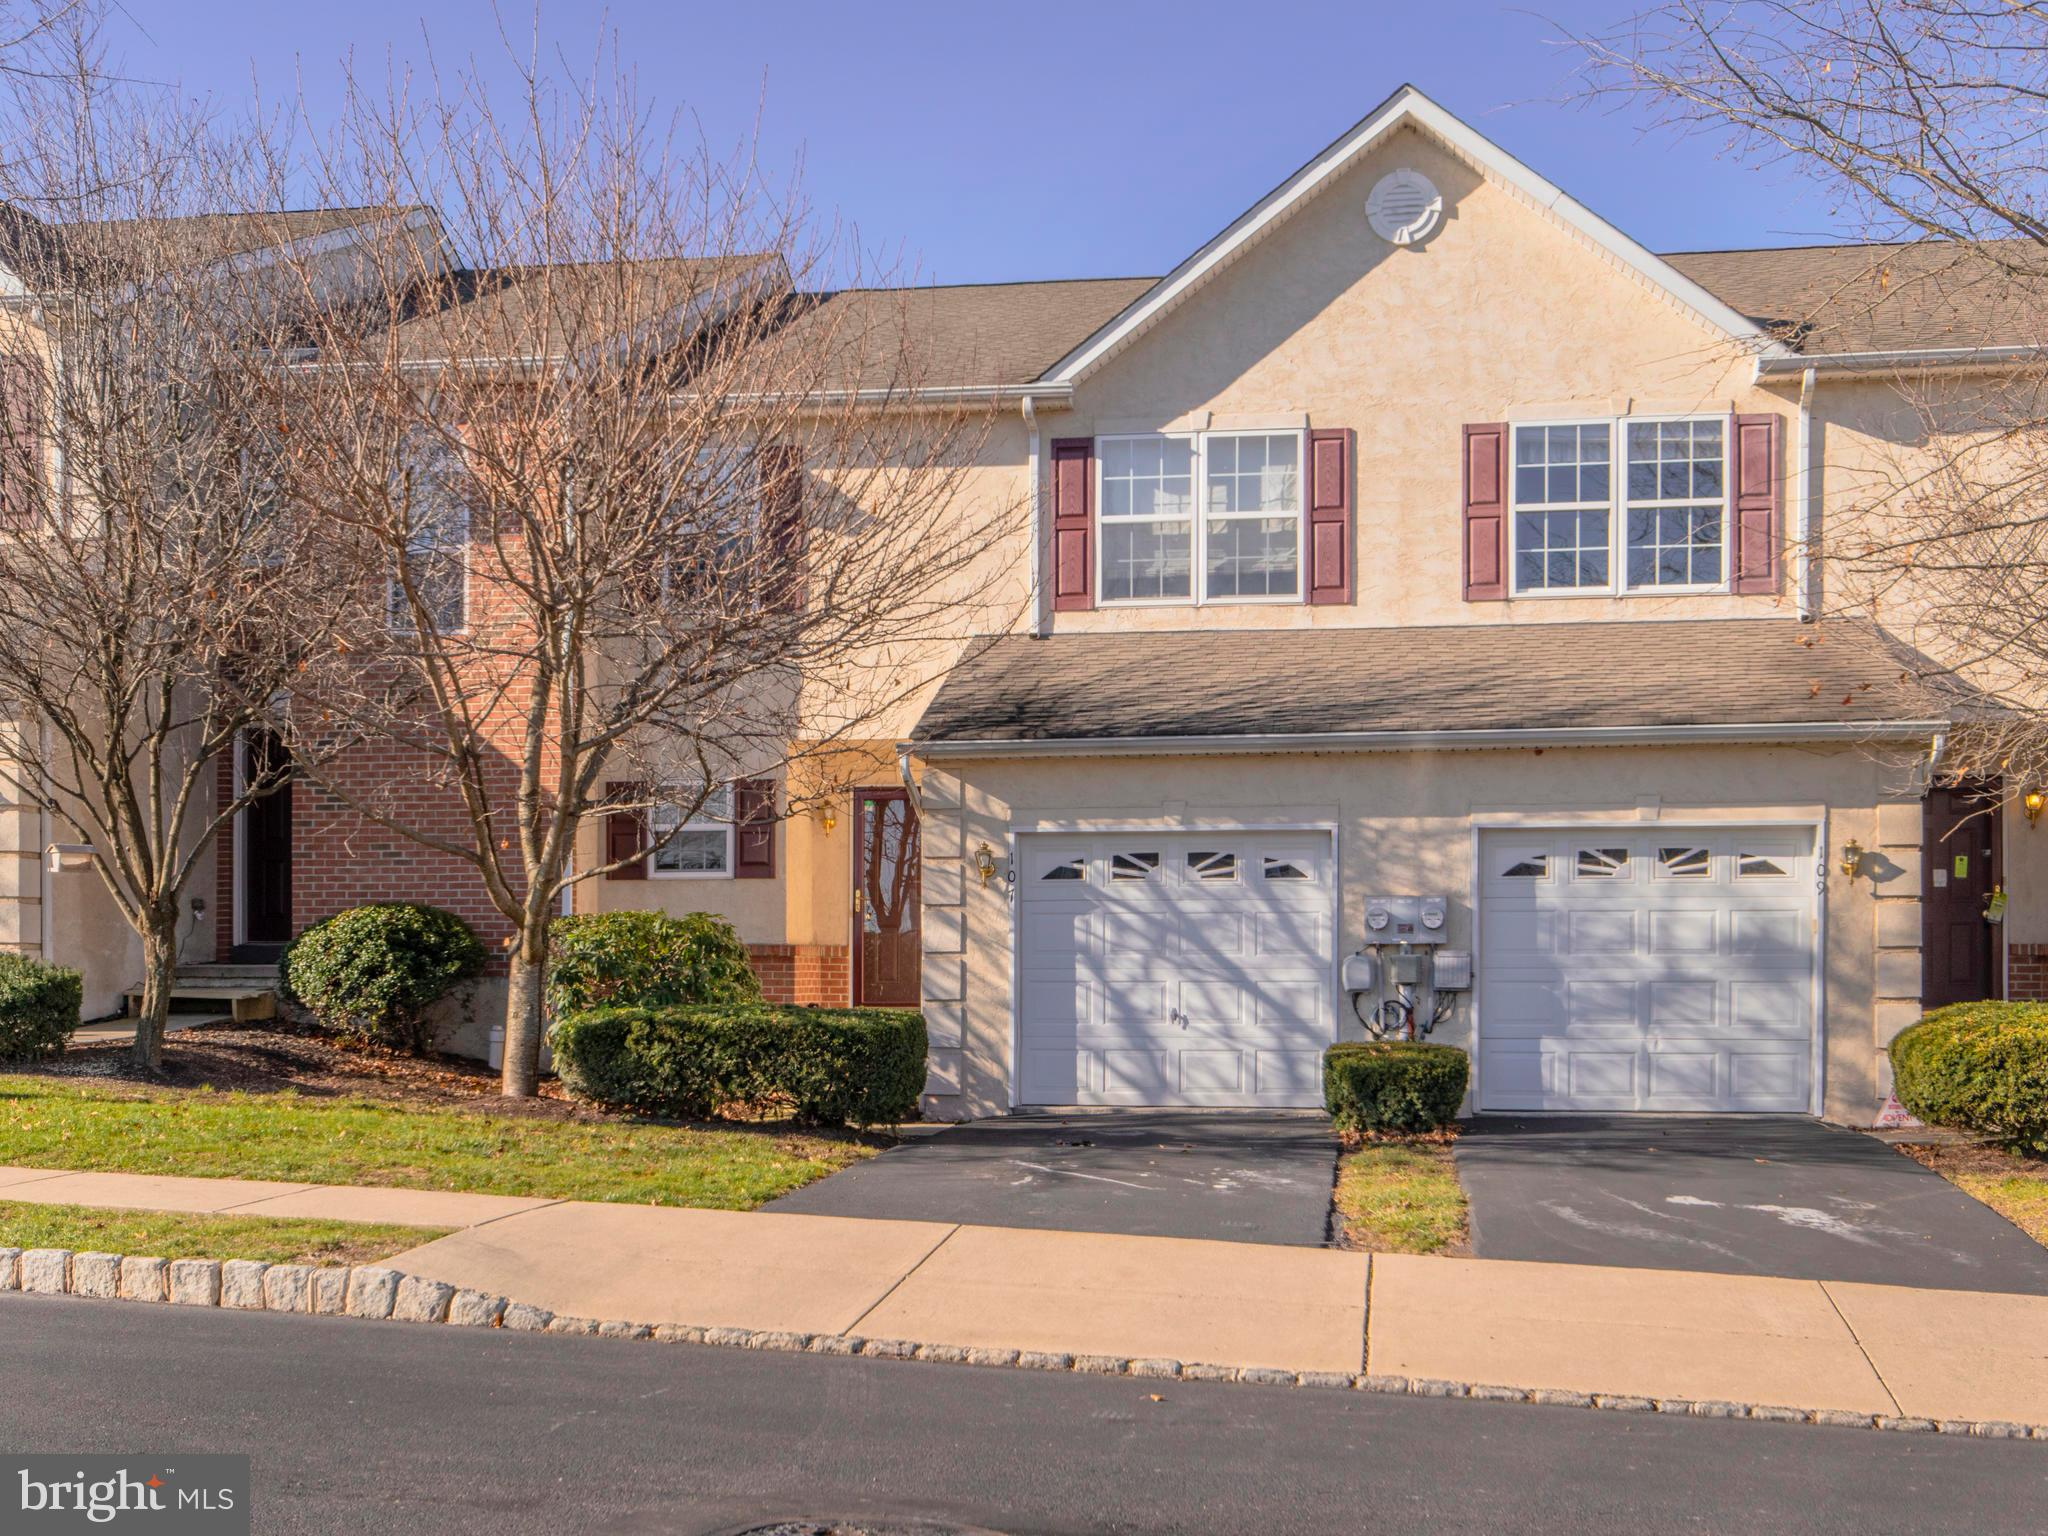 107 THORNDALE DRIVE, RED HILL, PA 18076